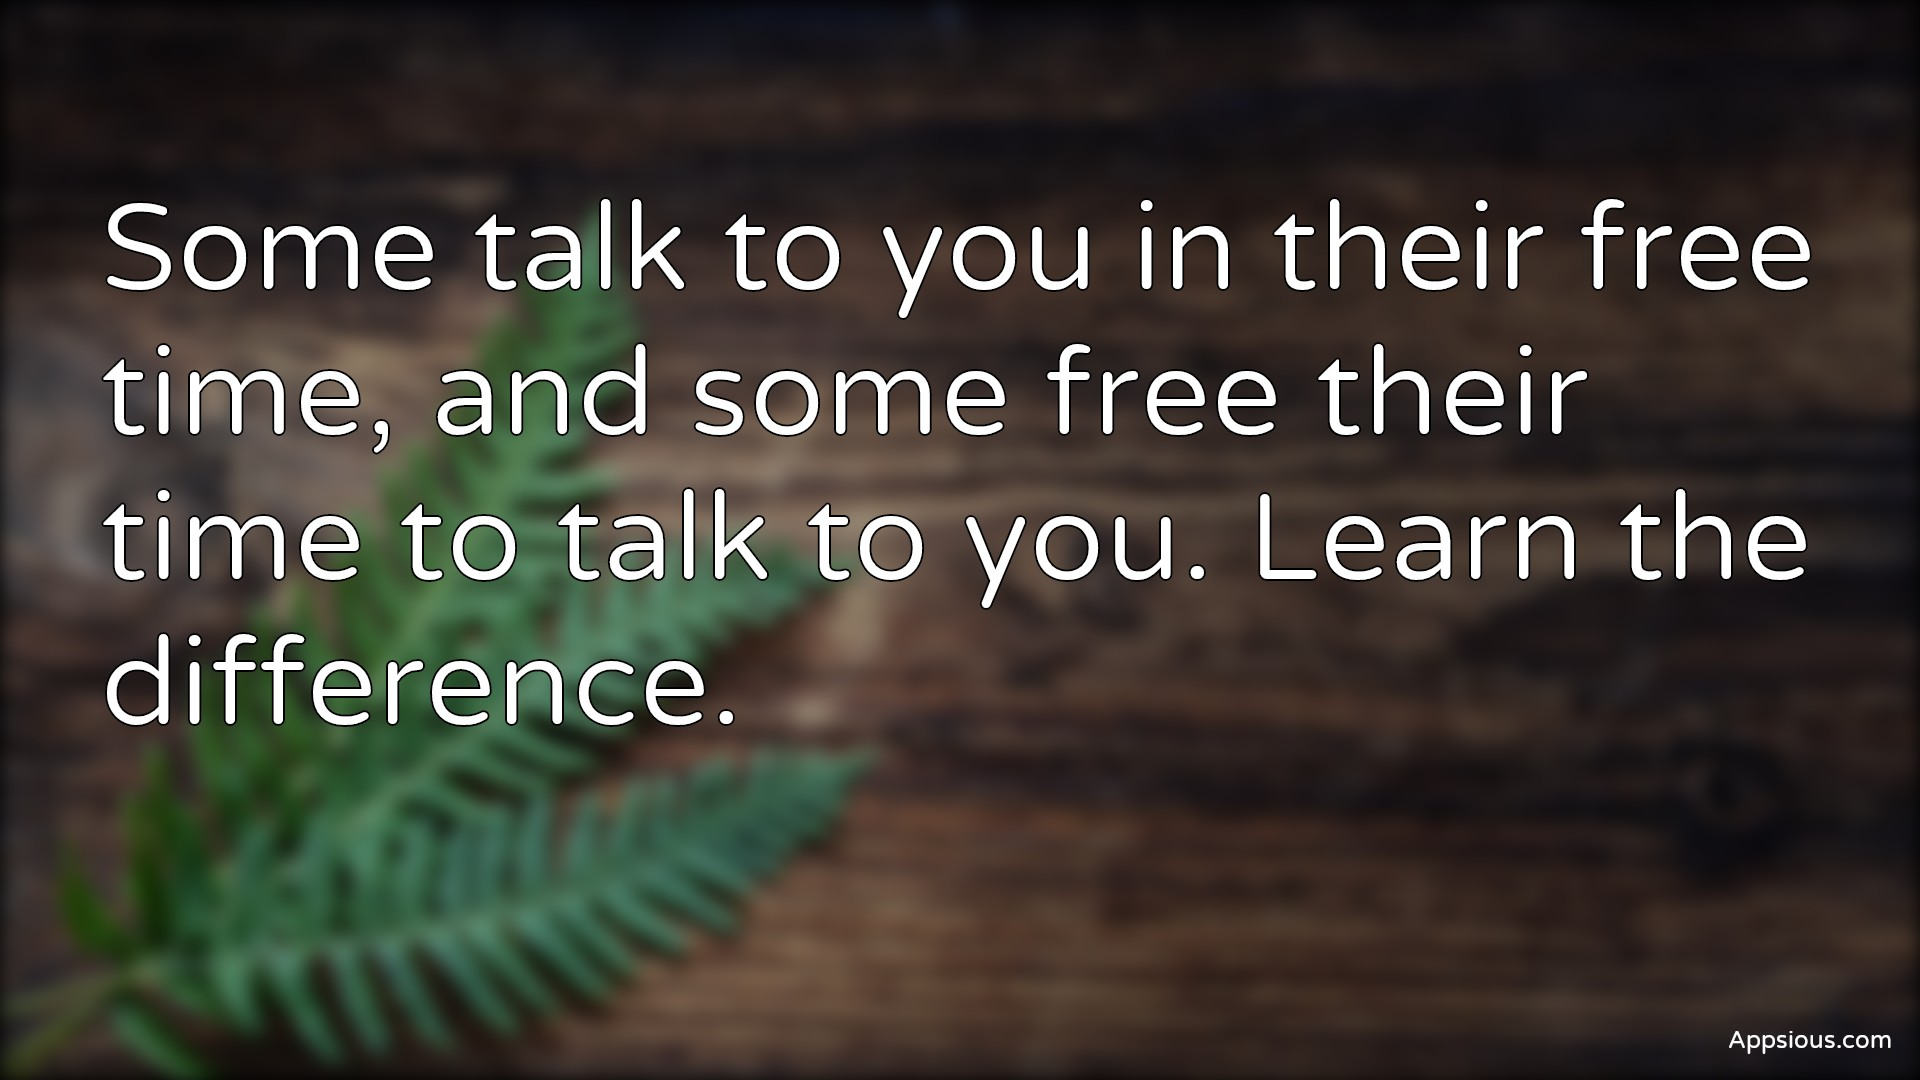 Some talk to you in their free time, and some free their time to talk to you. Learn the difference.